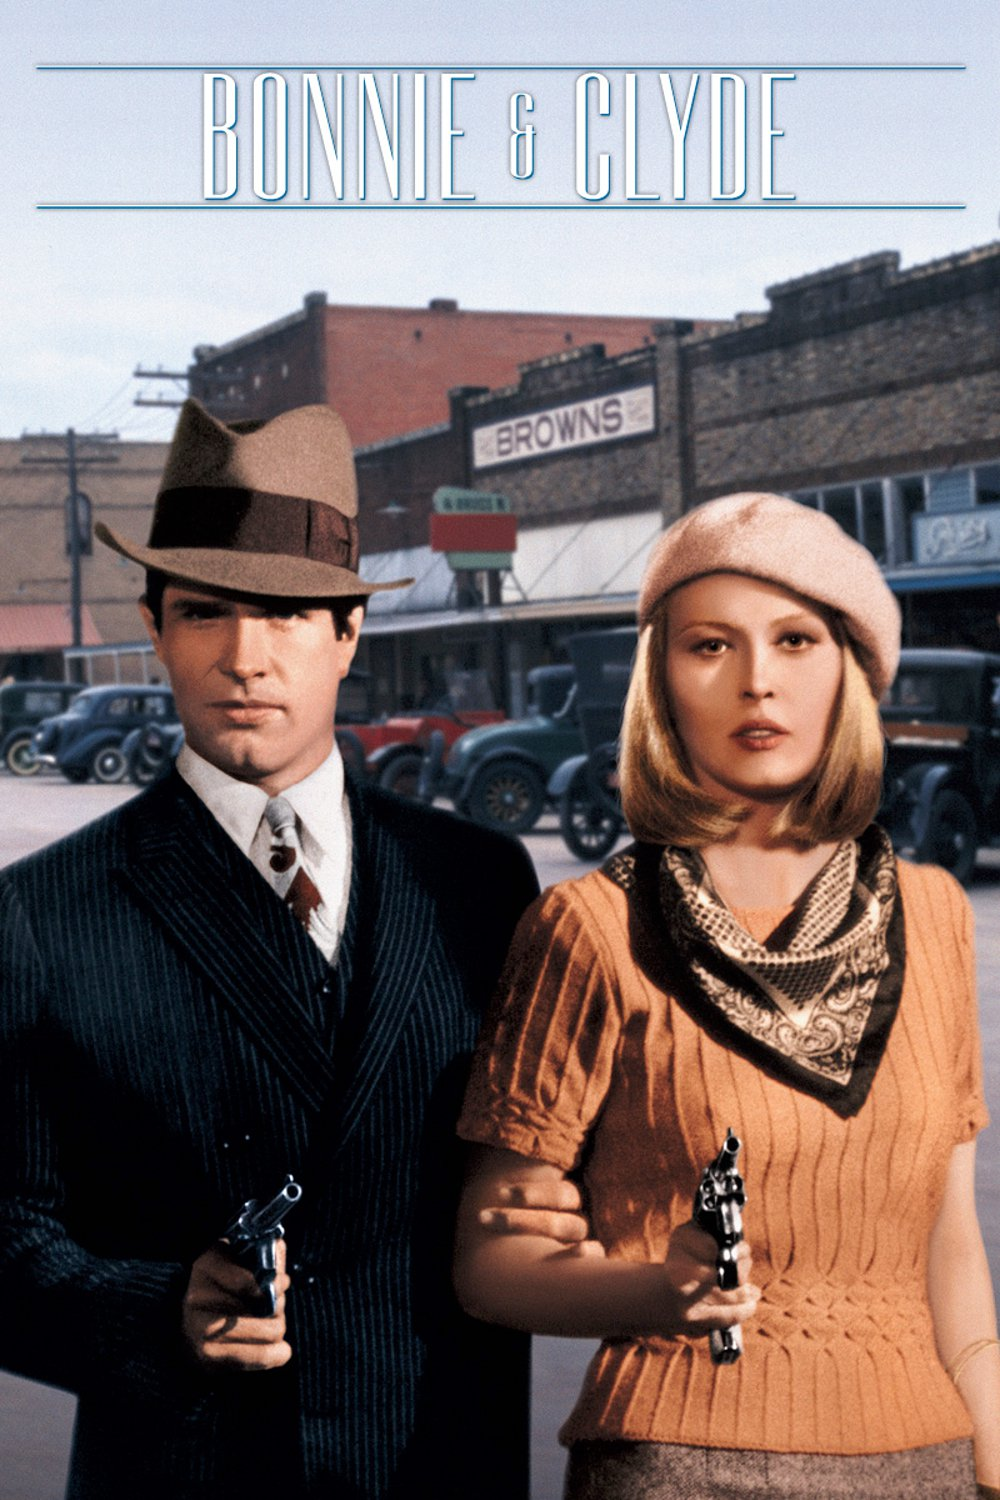 Poster for Bonnie and Clyde